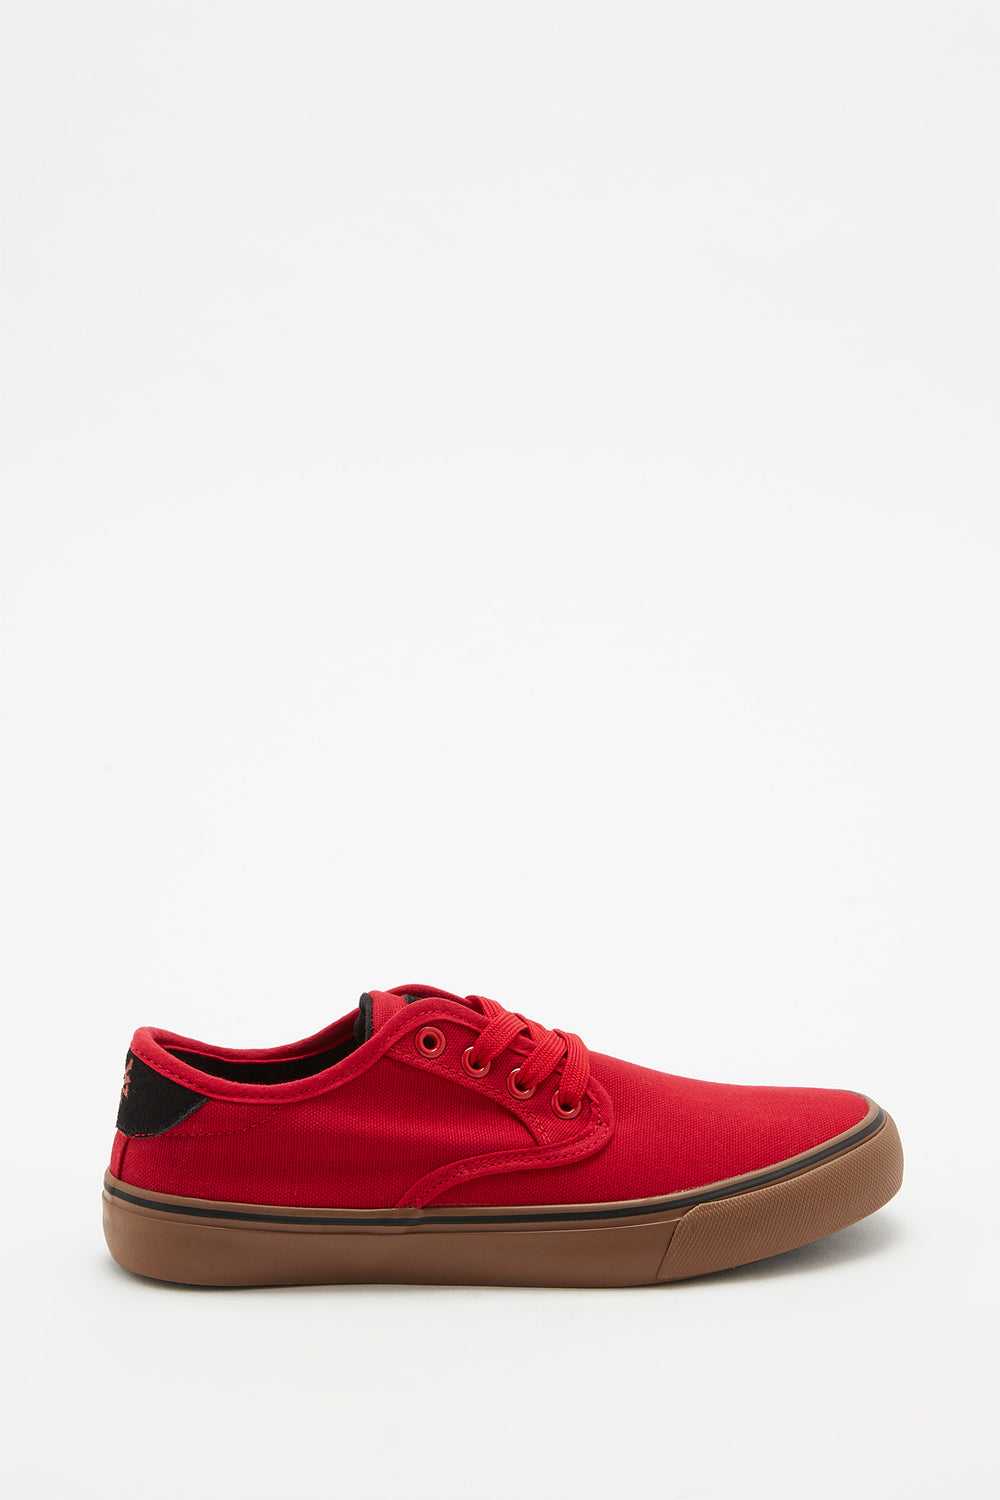 Zoo York Boys Canvas Skate Shoes Red